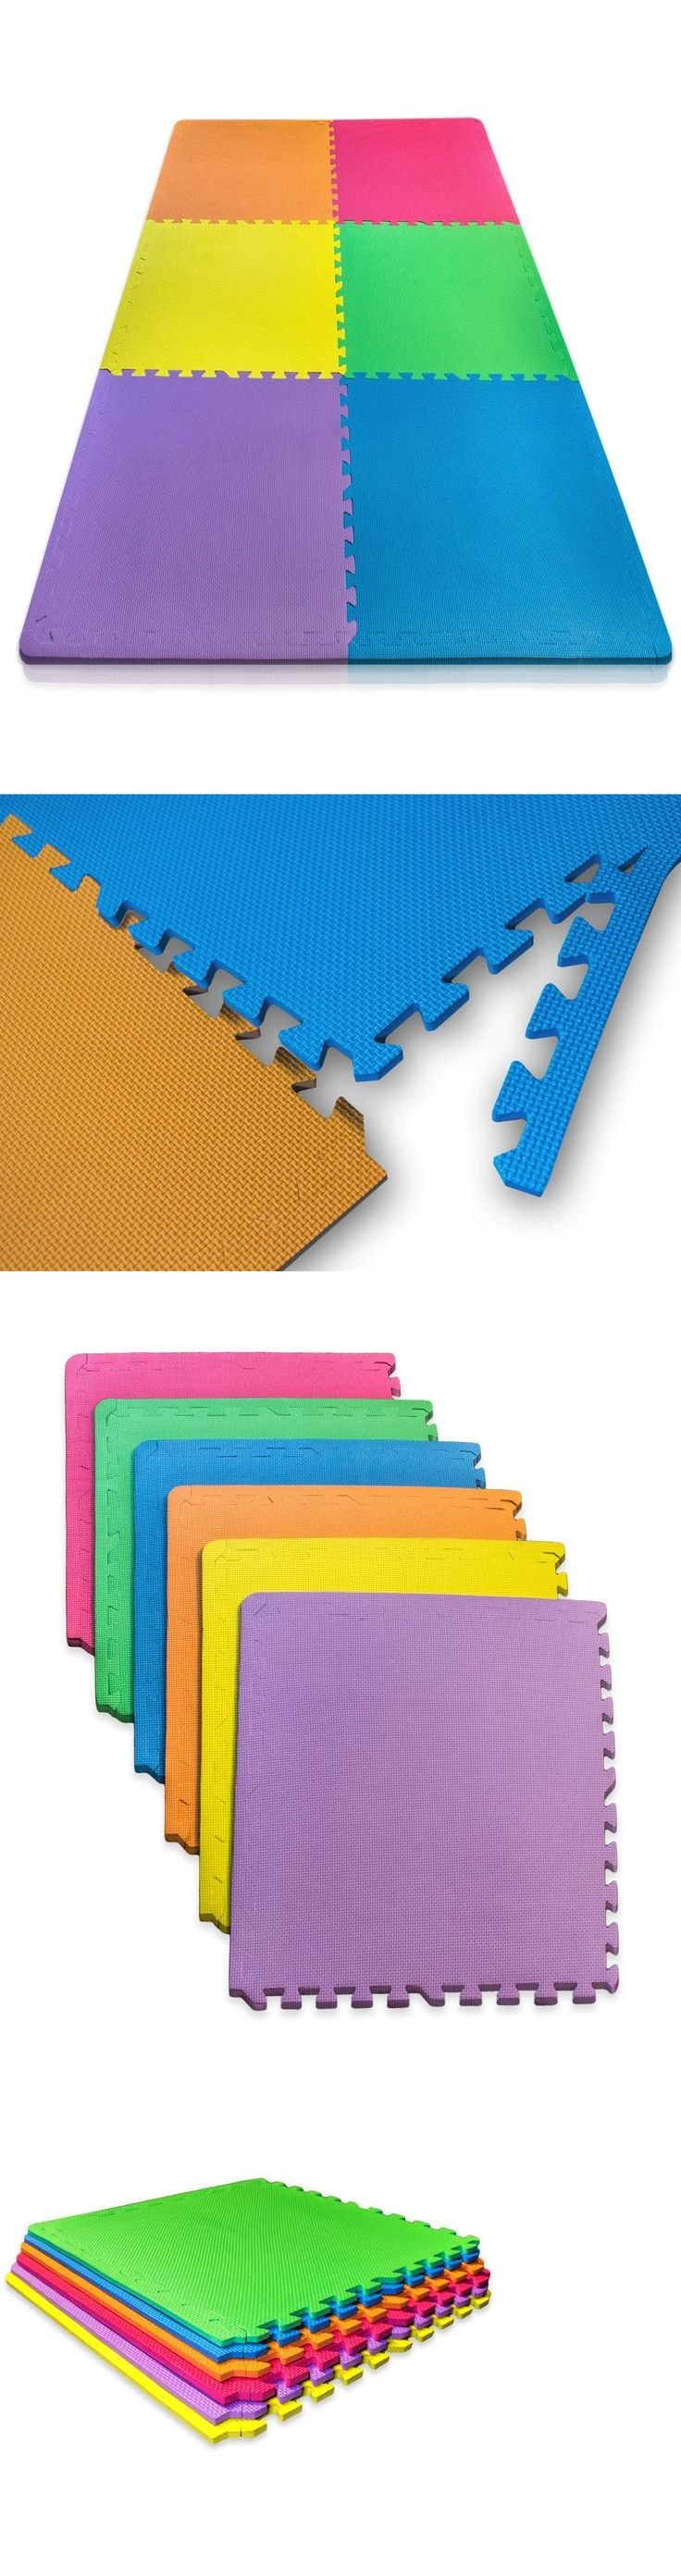 Rubber mats ebay - Exercise Mats 44079 Rubber Gym Floor Mat 6 Pcs Colorful Flooring Exercise Garage Workout Fitness